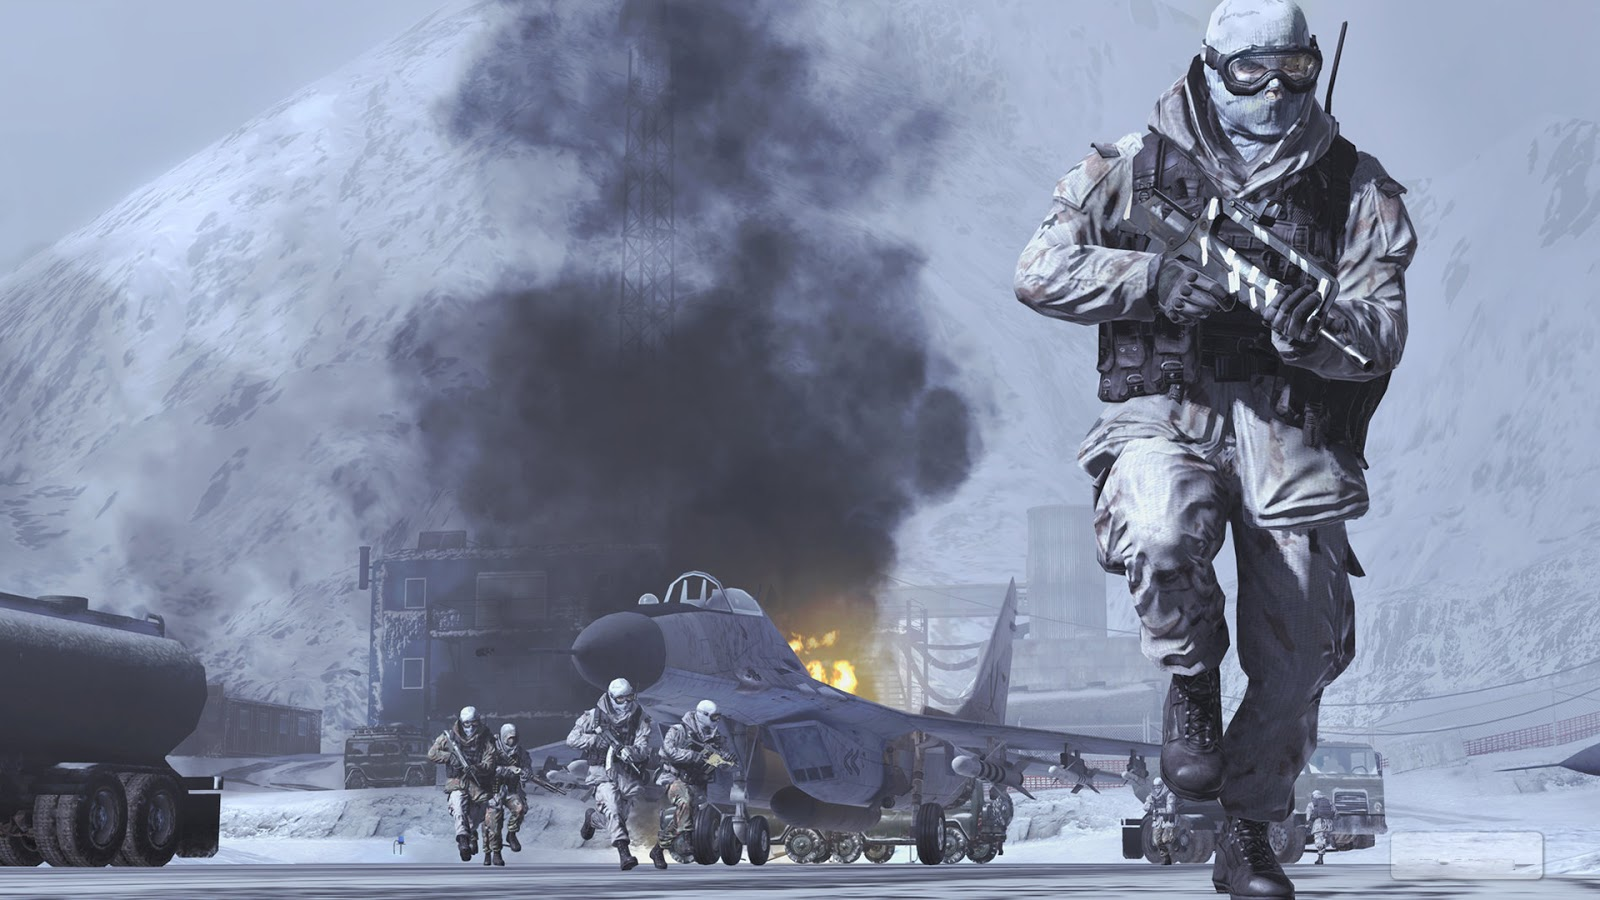 hd wallpapers call of duty black ops hd wallpapers